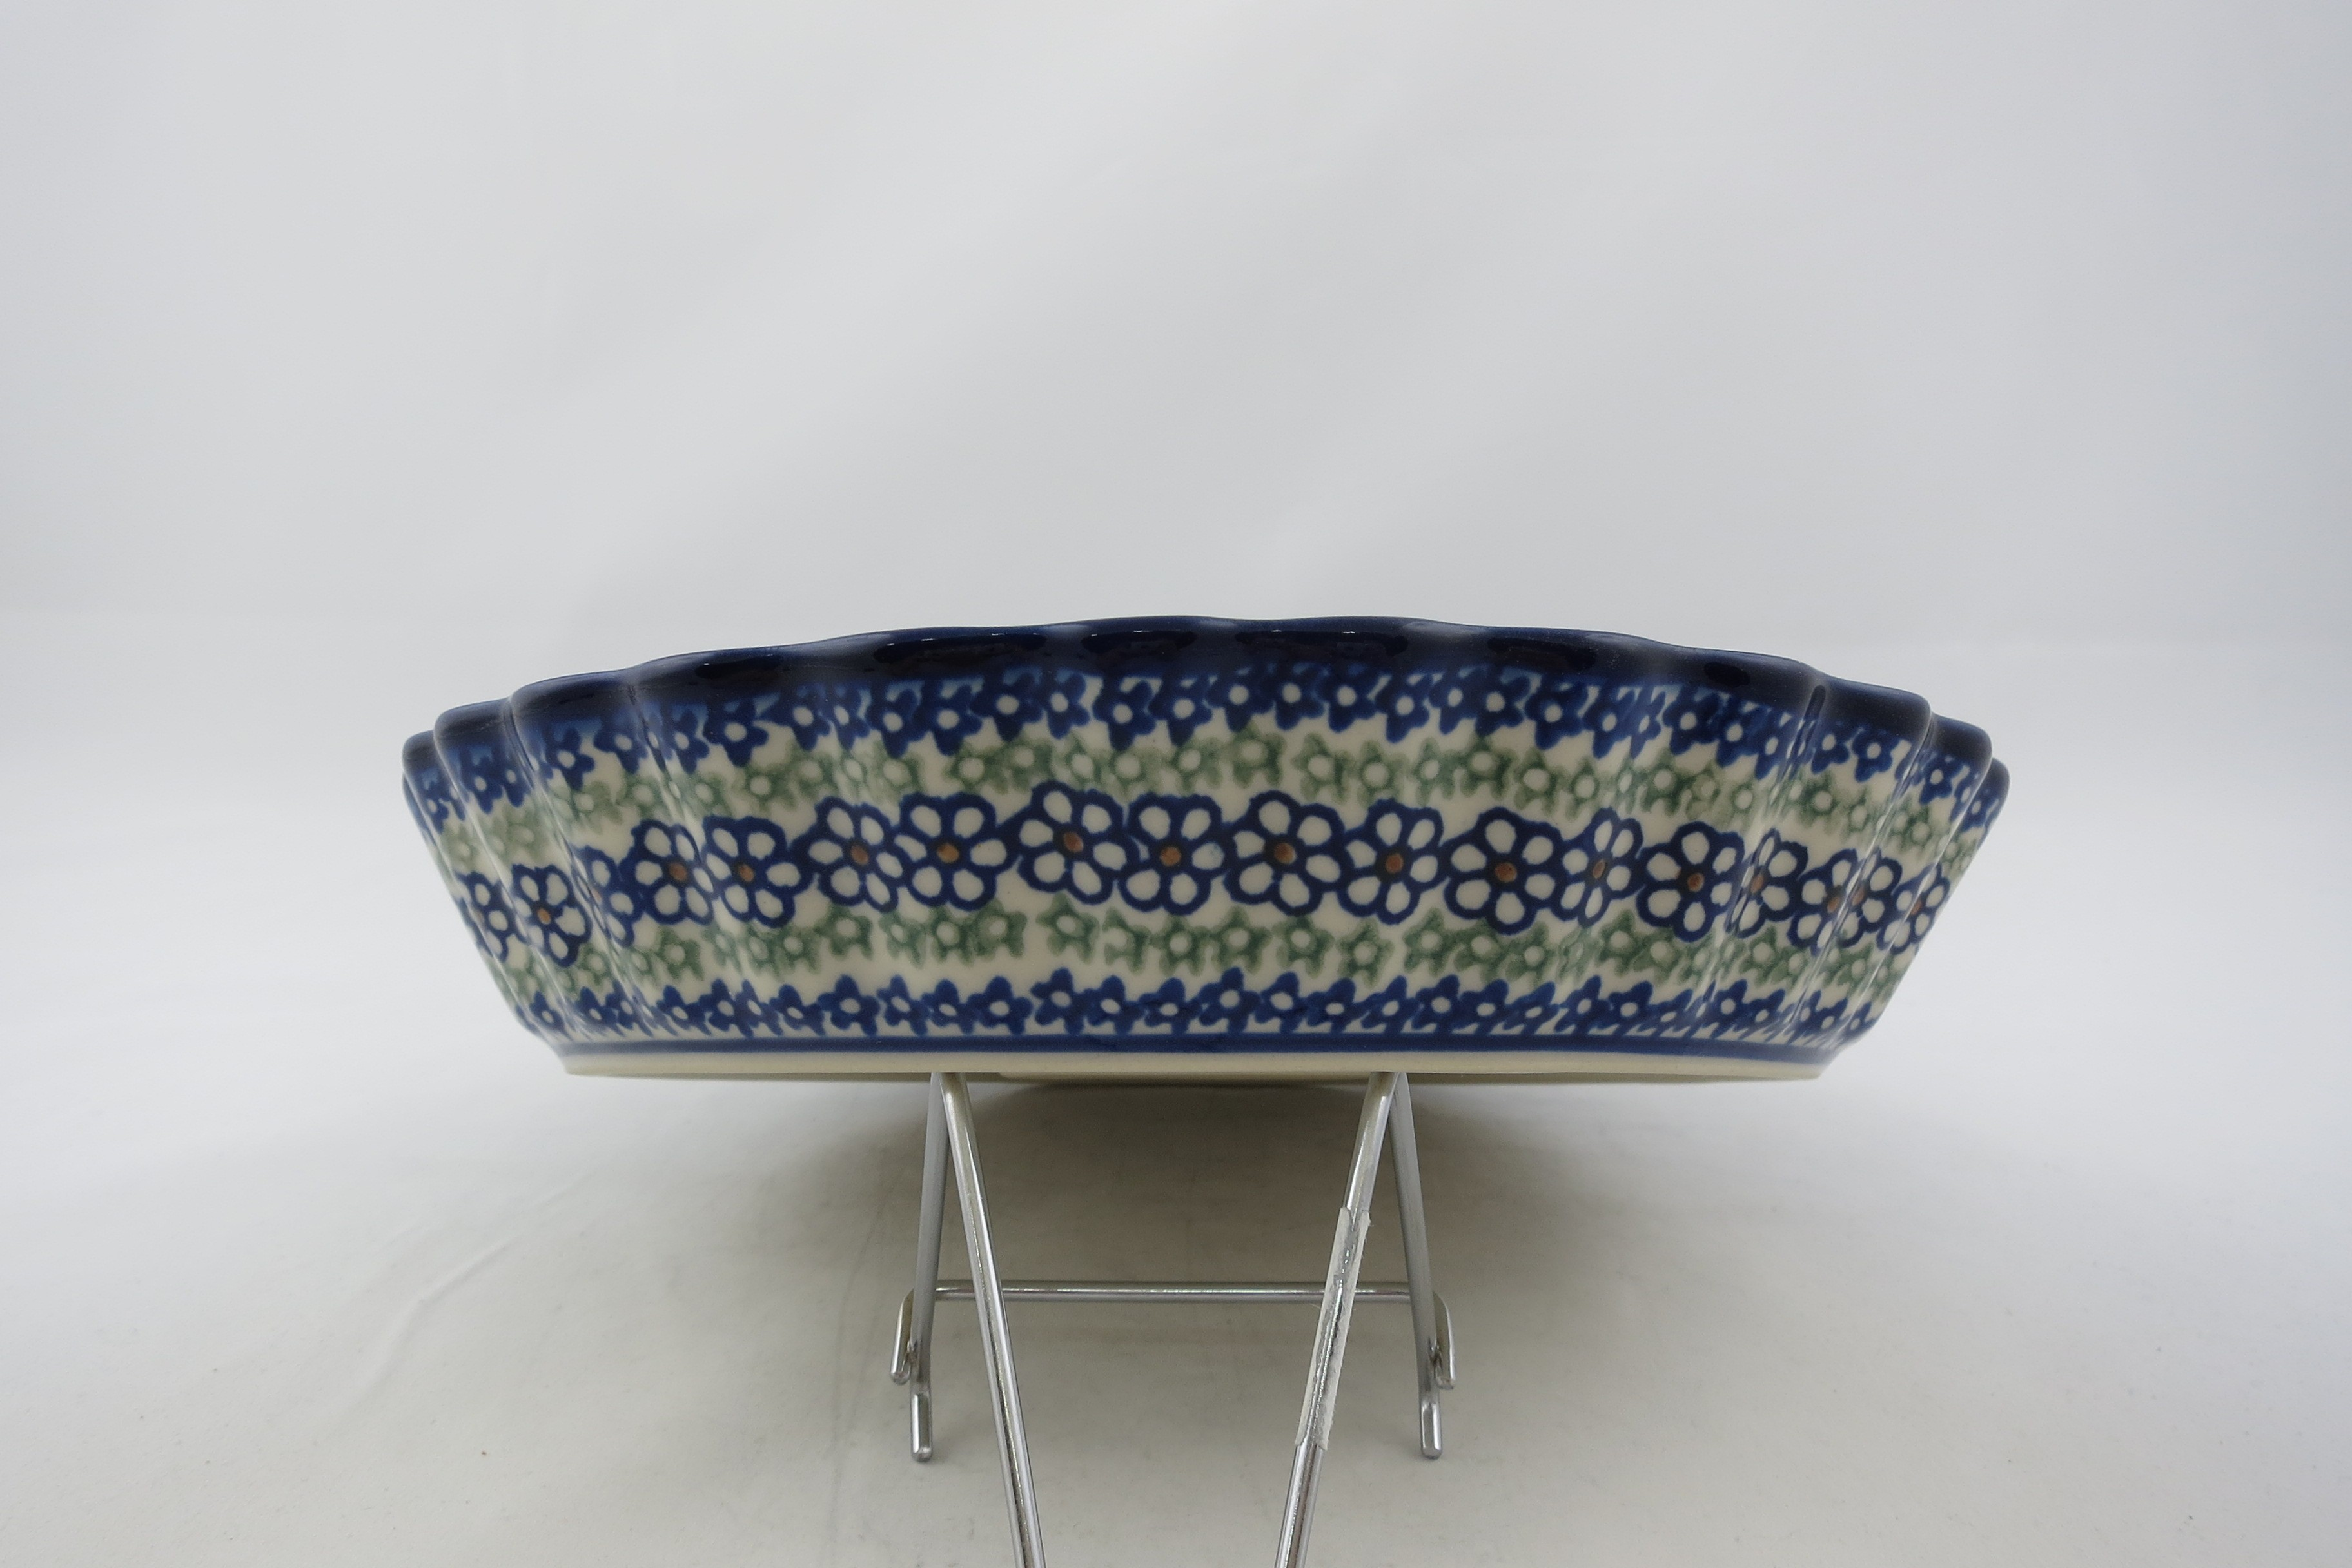 Pottery Avenue Scalloped Pie Dish | VENA-UNIKAT